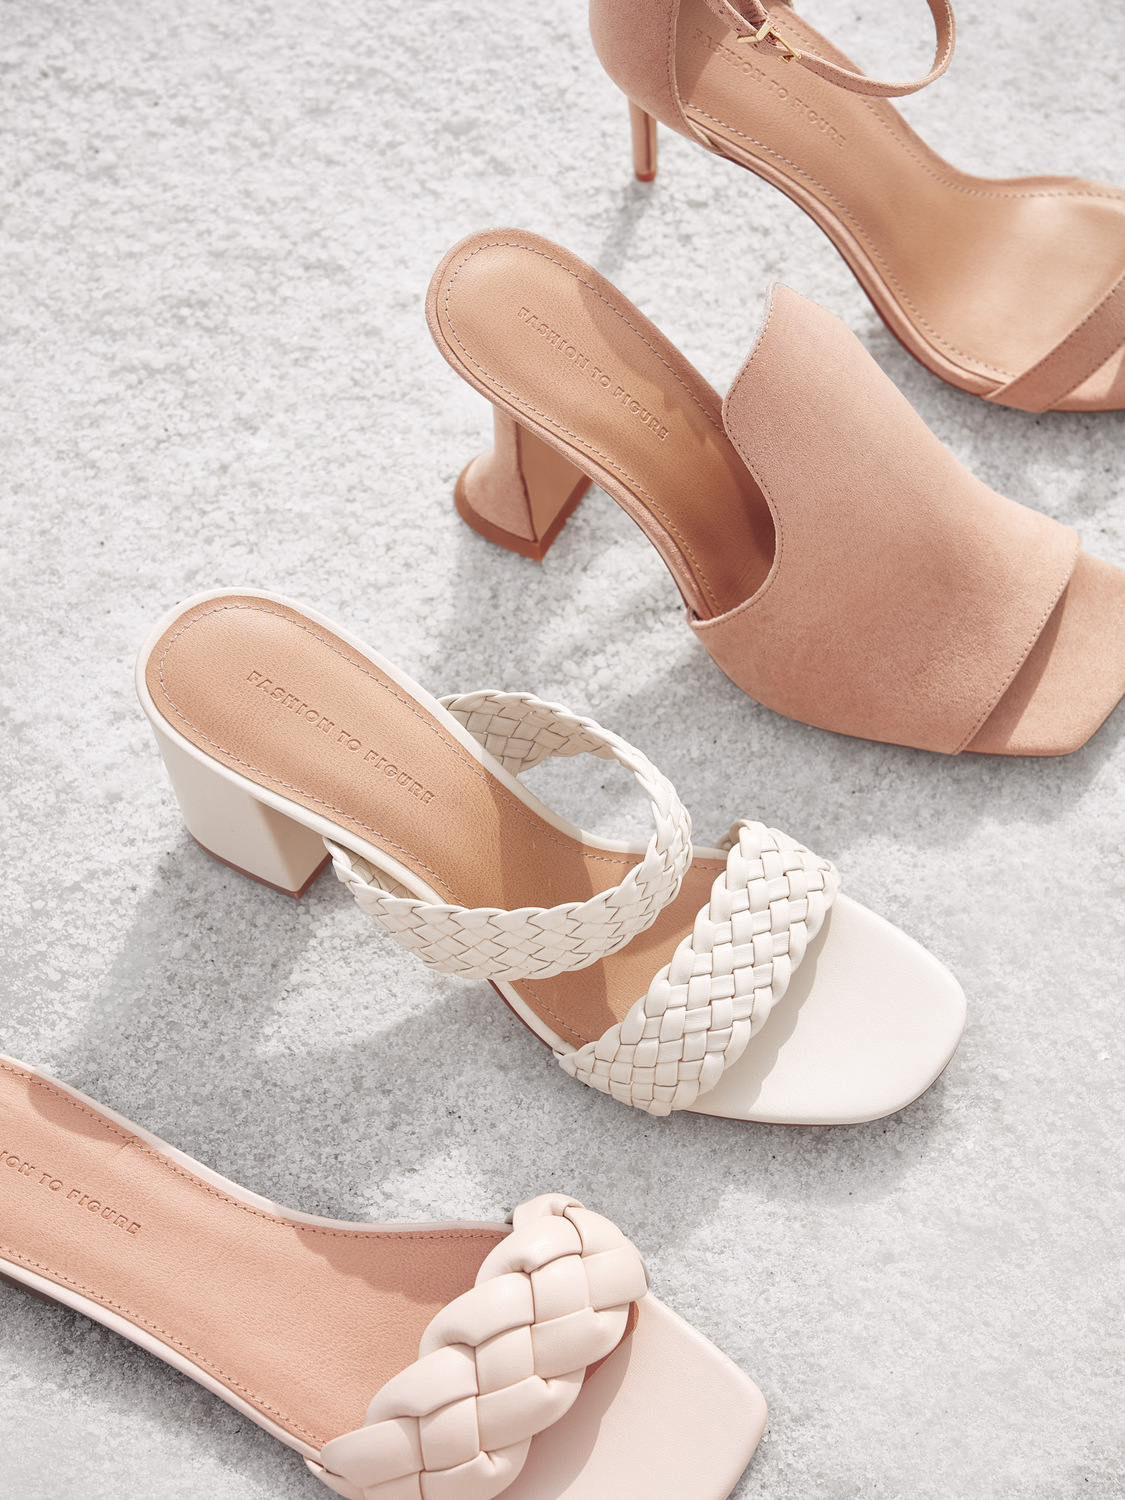 Fashion to Figure Shoe Collection- Wide Width Shoes for Spring